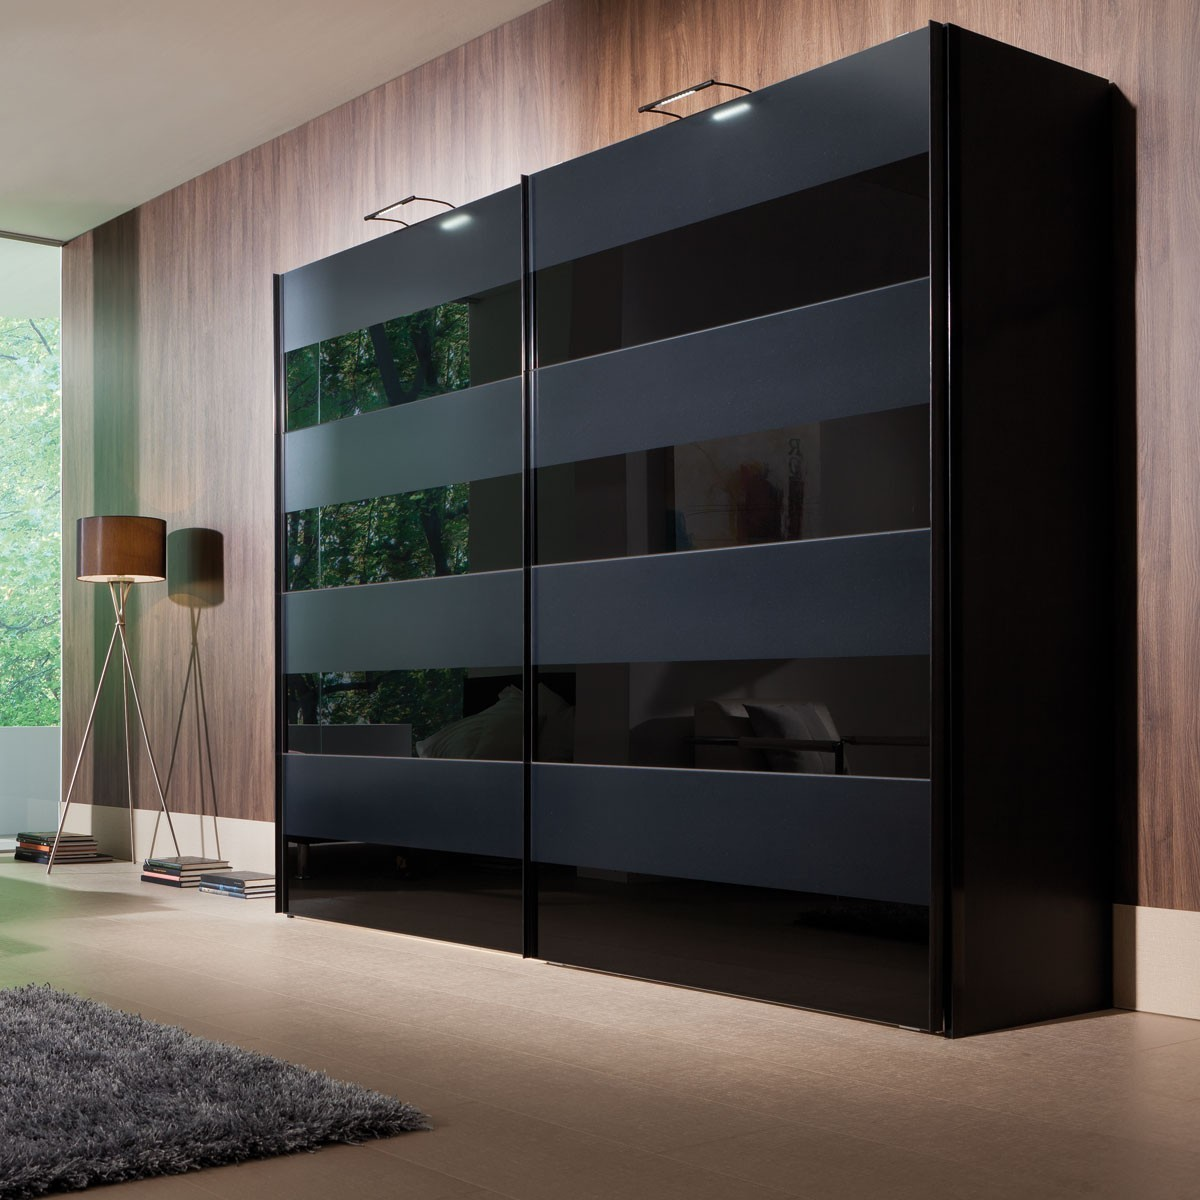 schwebet renschrank kleiderschrank boston schwarz glas schwarz matt glossy ebay. Black Bedroom Furniture Sets. Home Design Ideas